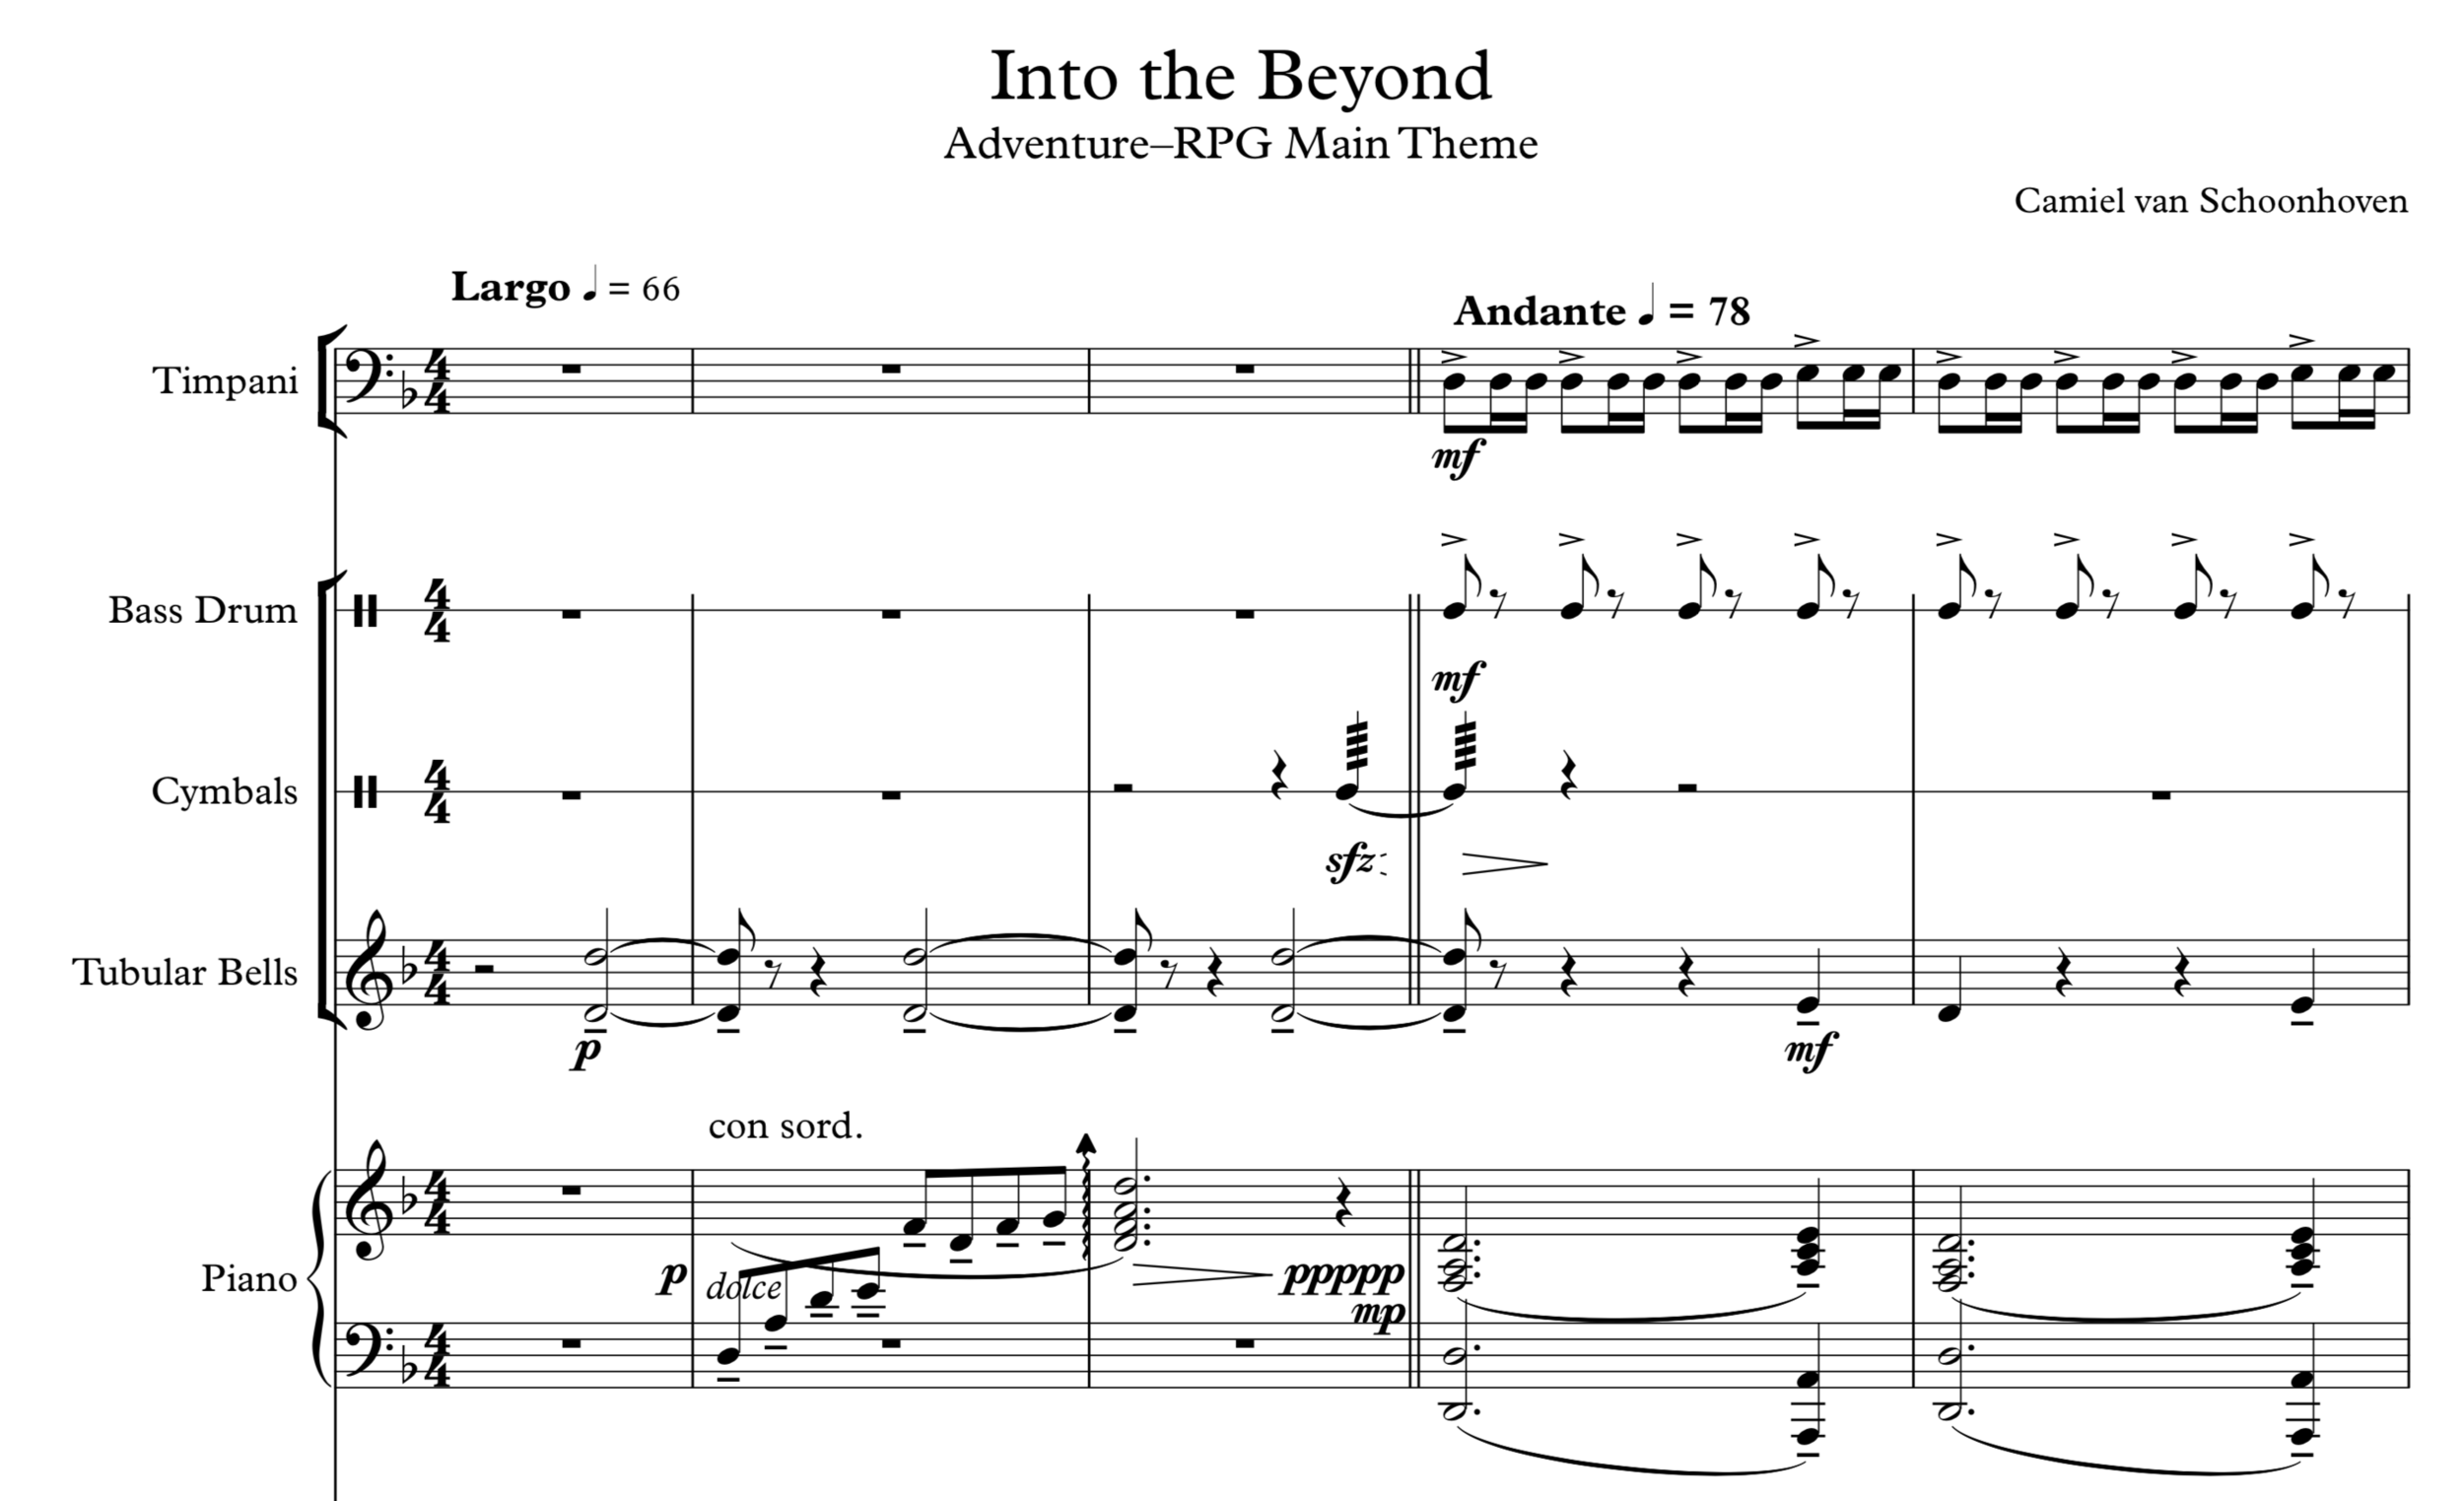 The opening bars for percussion and piano.